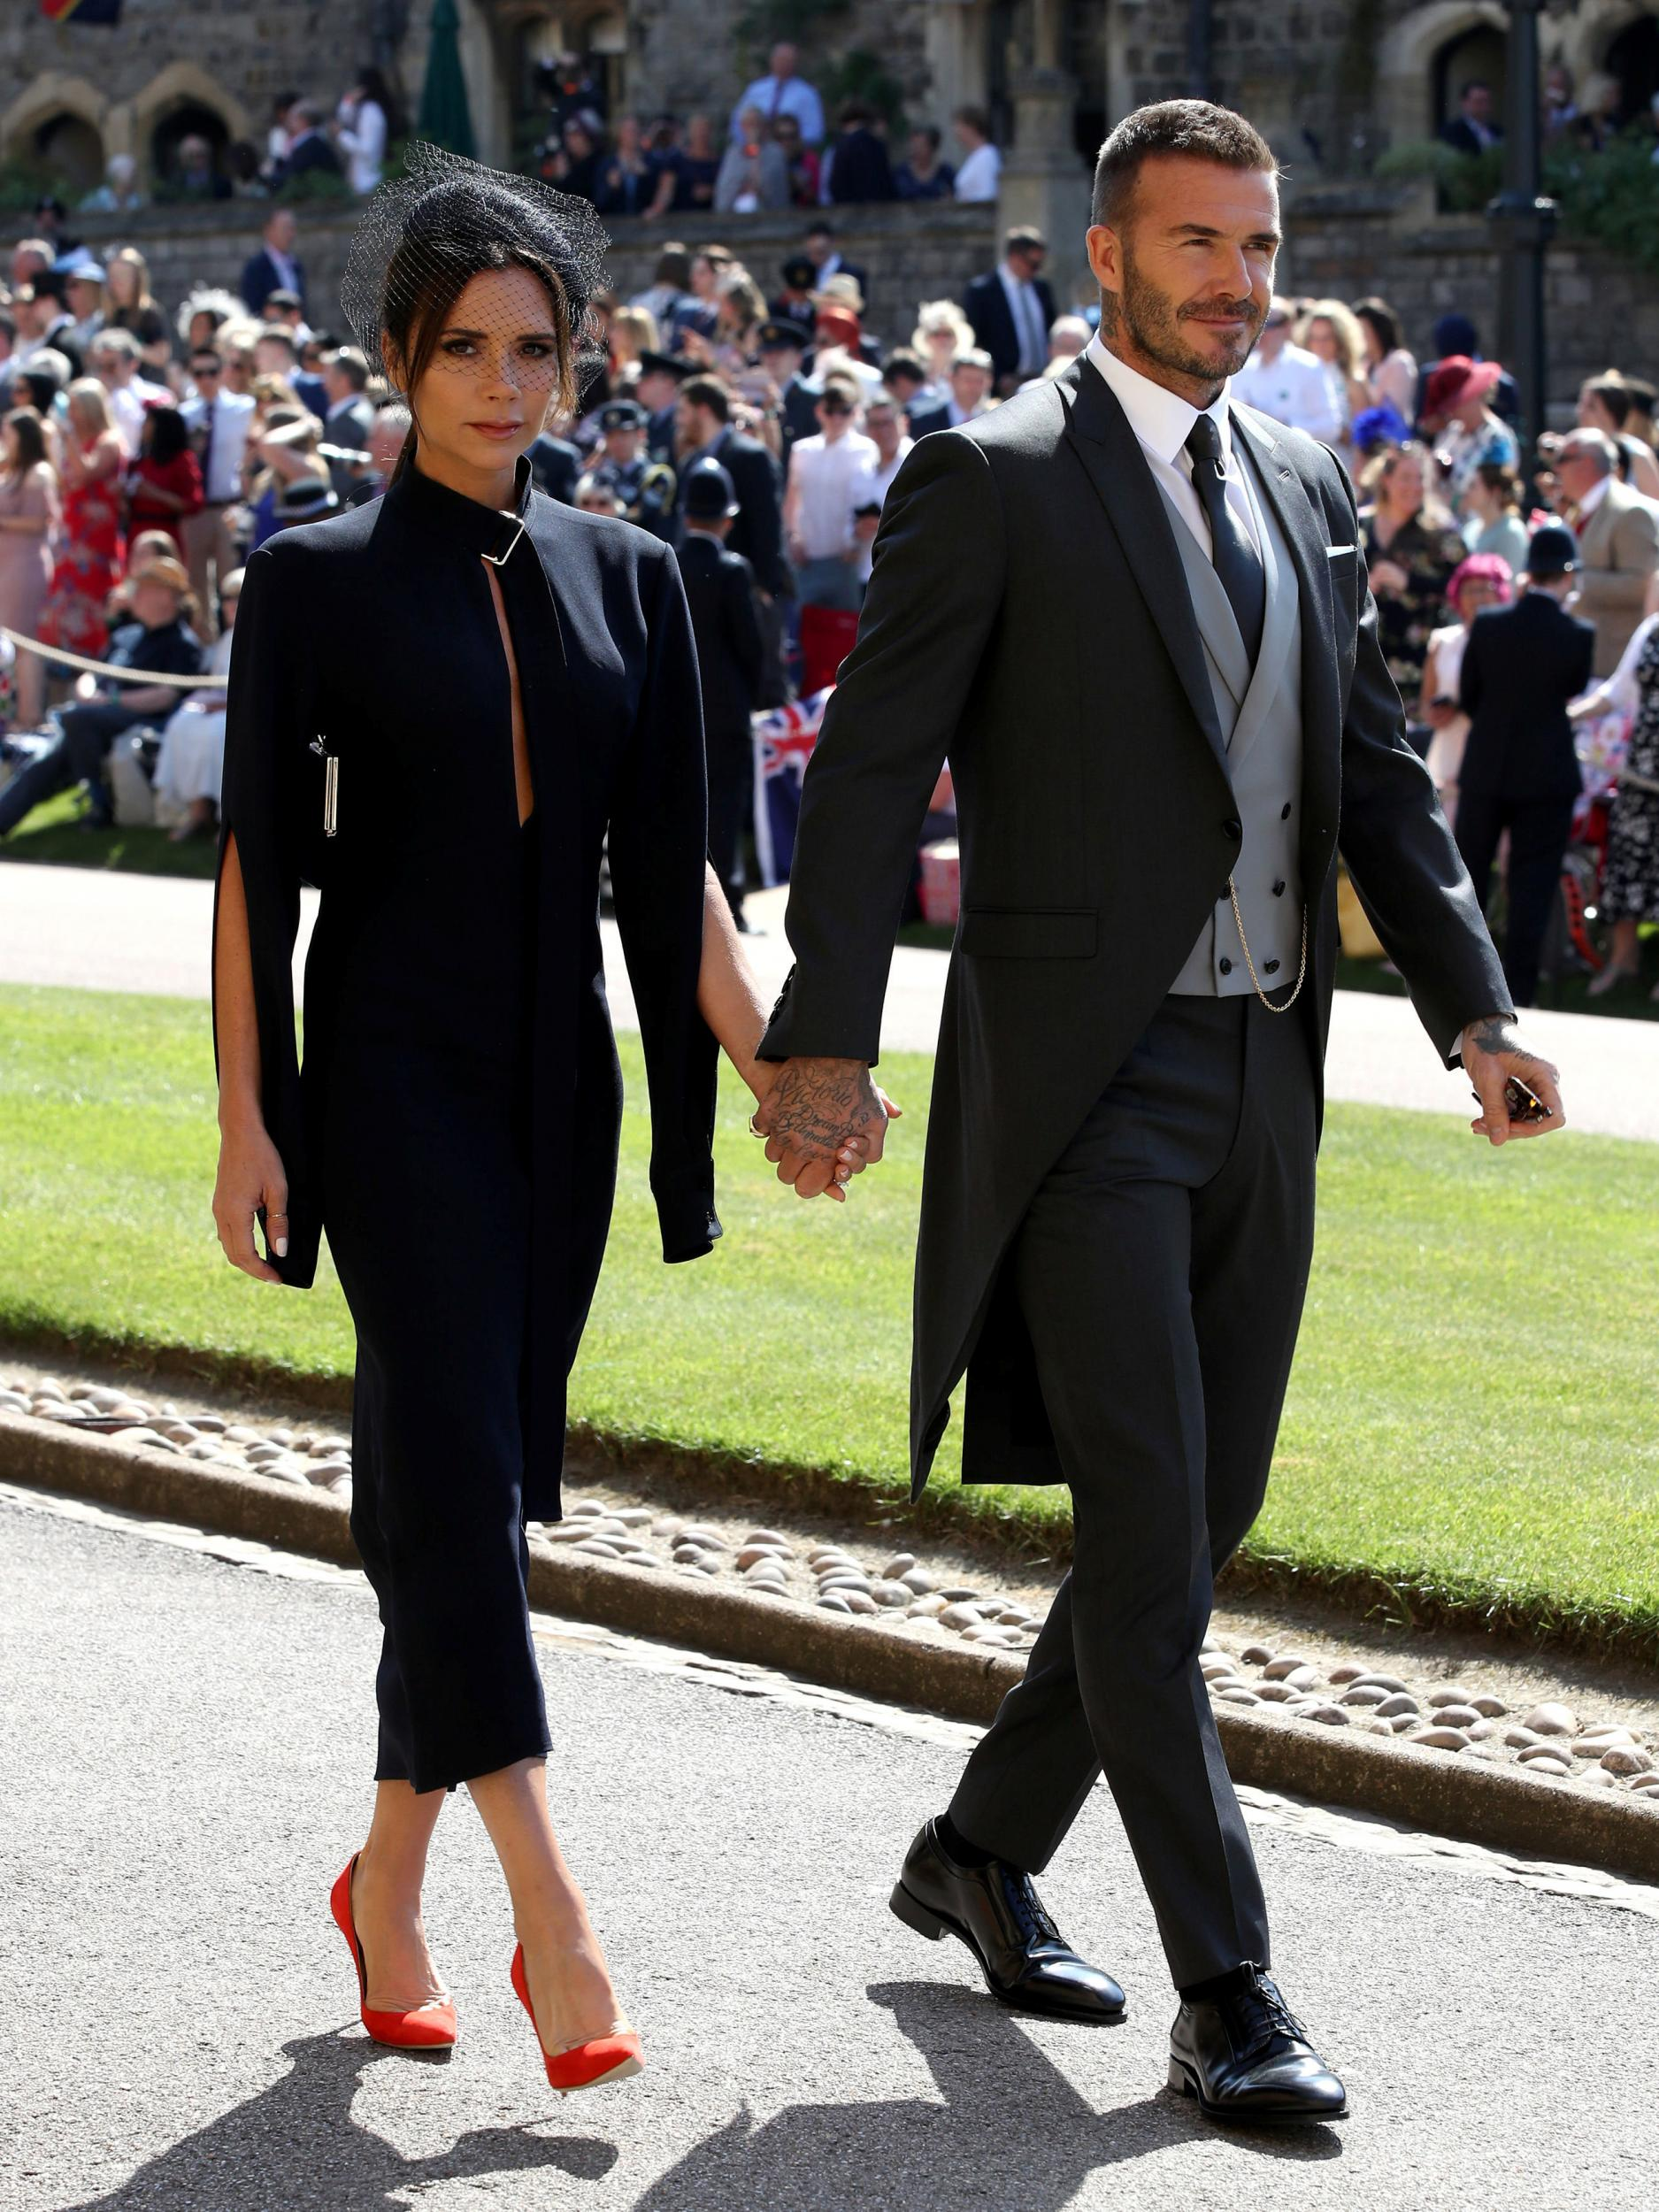 Amal Clooney Royal Wedding.Royal Wedding The Nine Main Talking Points From The Viral Pageboy